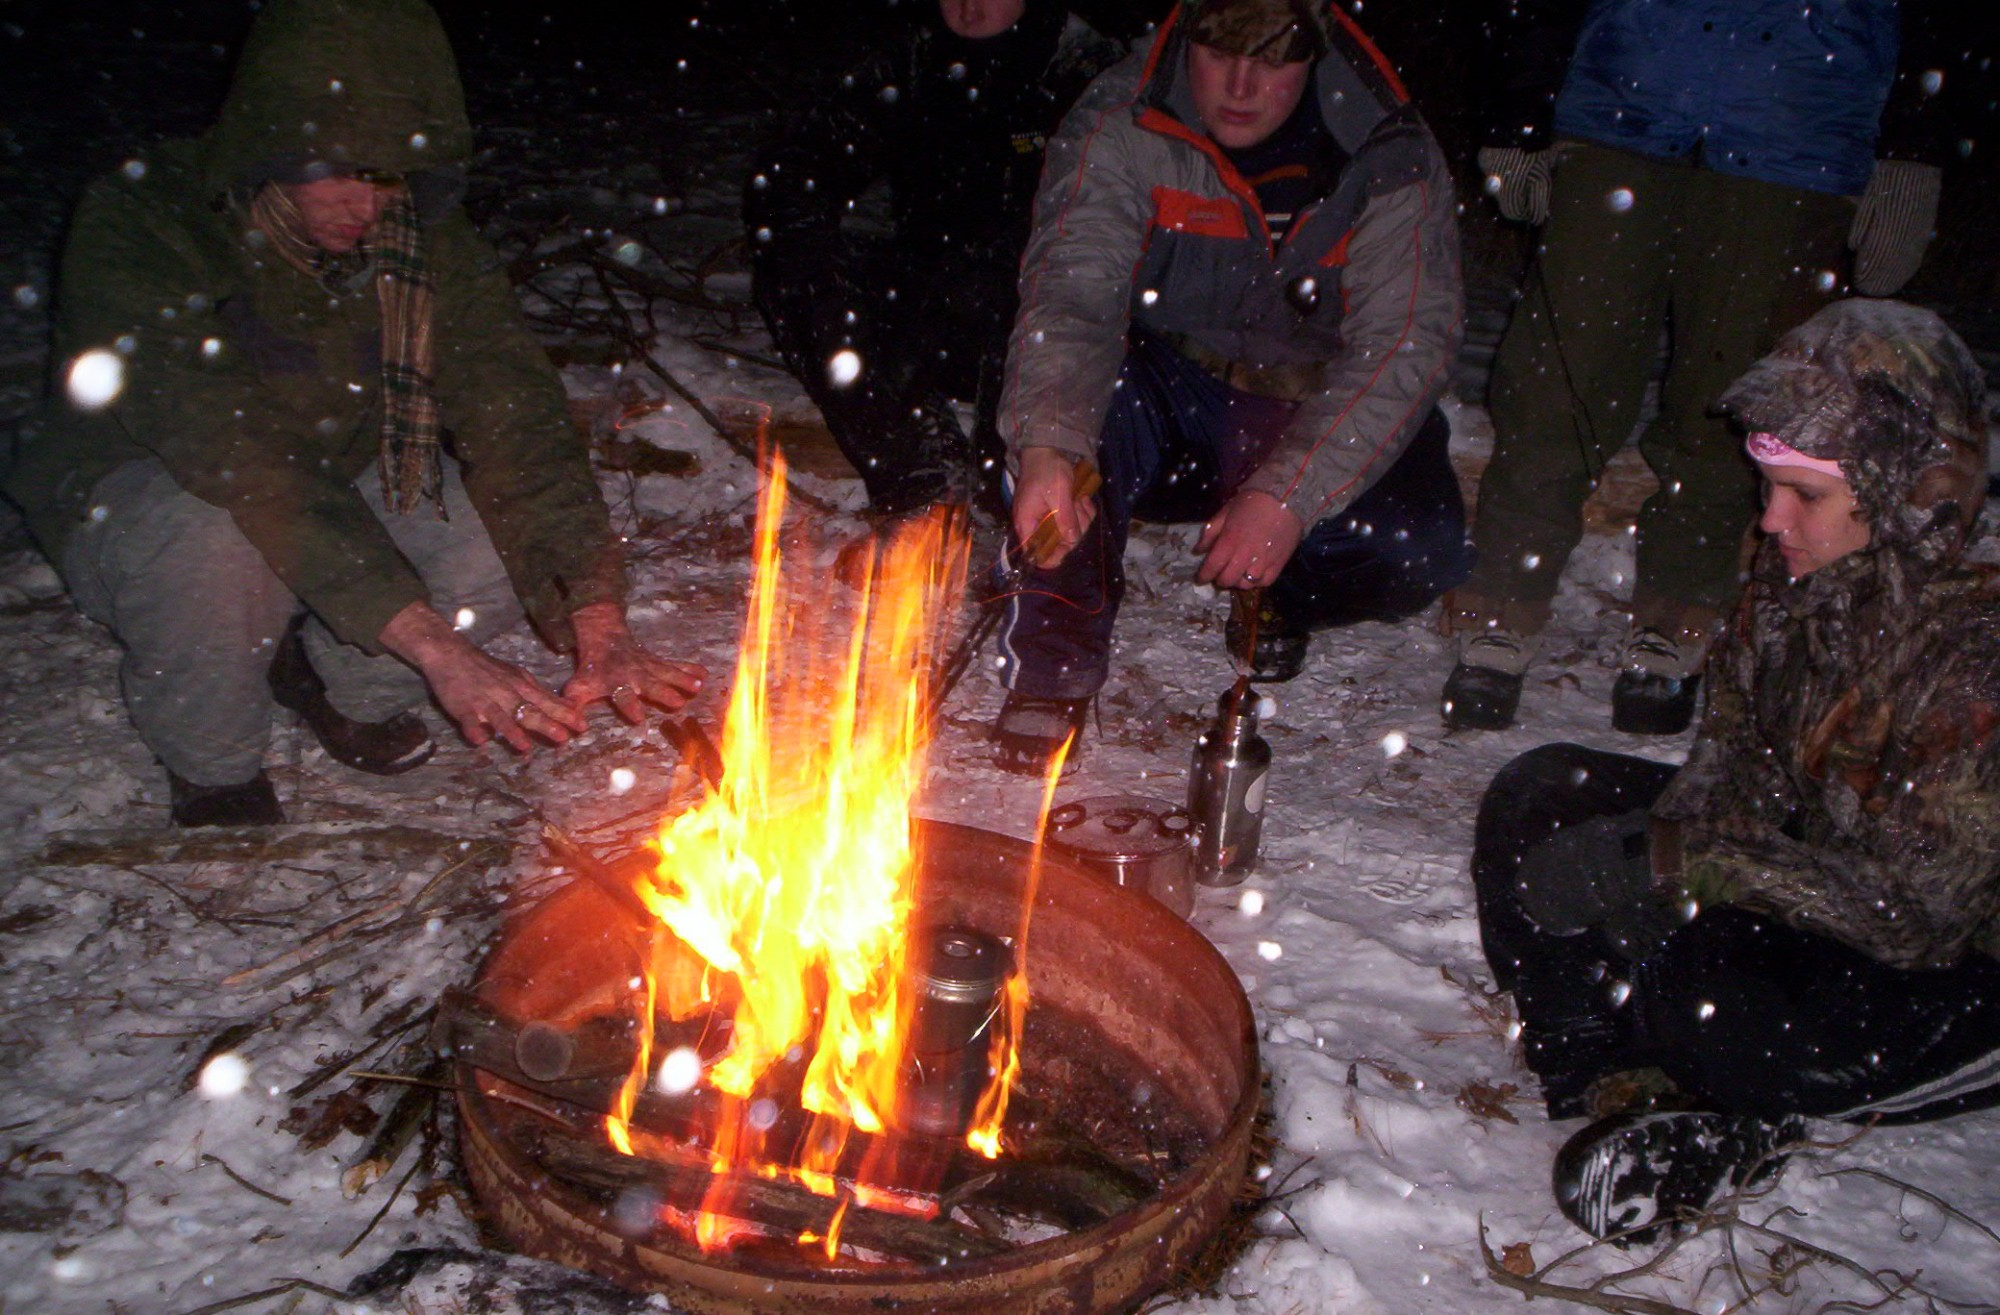 students around a campfire in winter